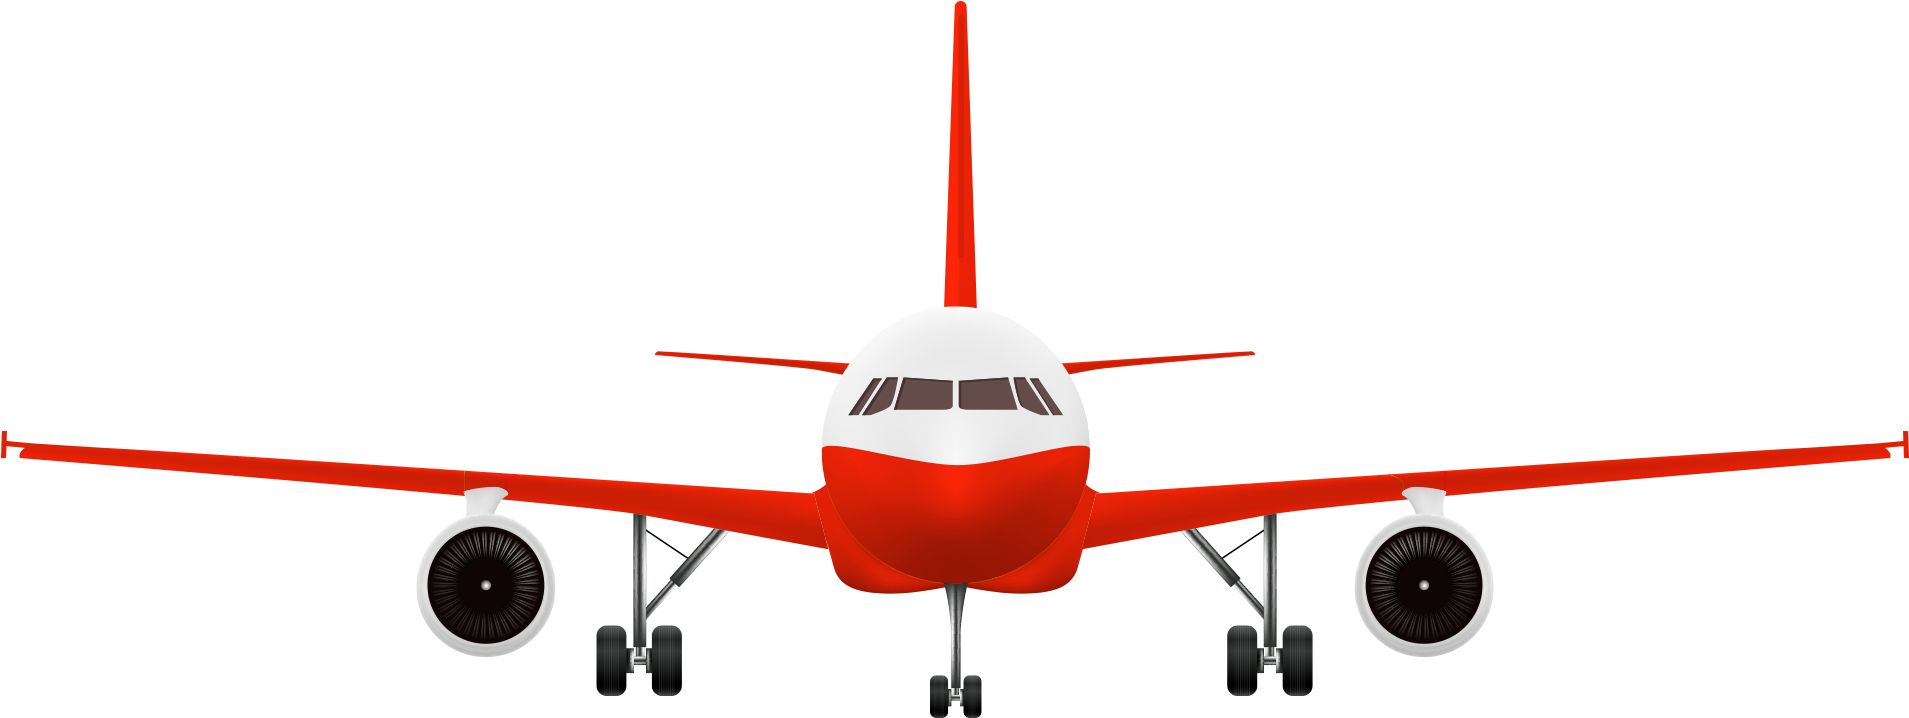 Airplane Front Png Png Download Airplane Front Png.